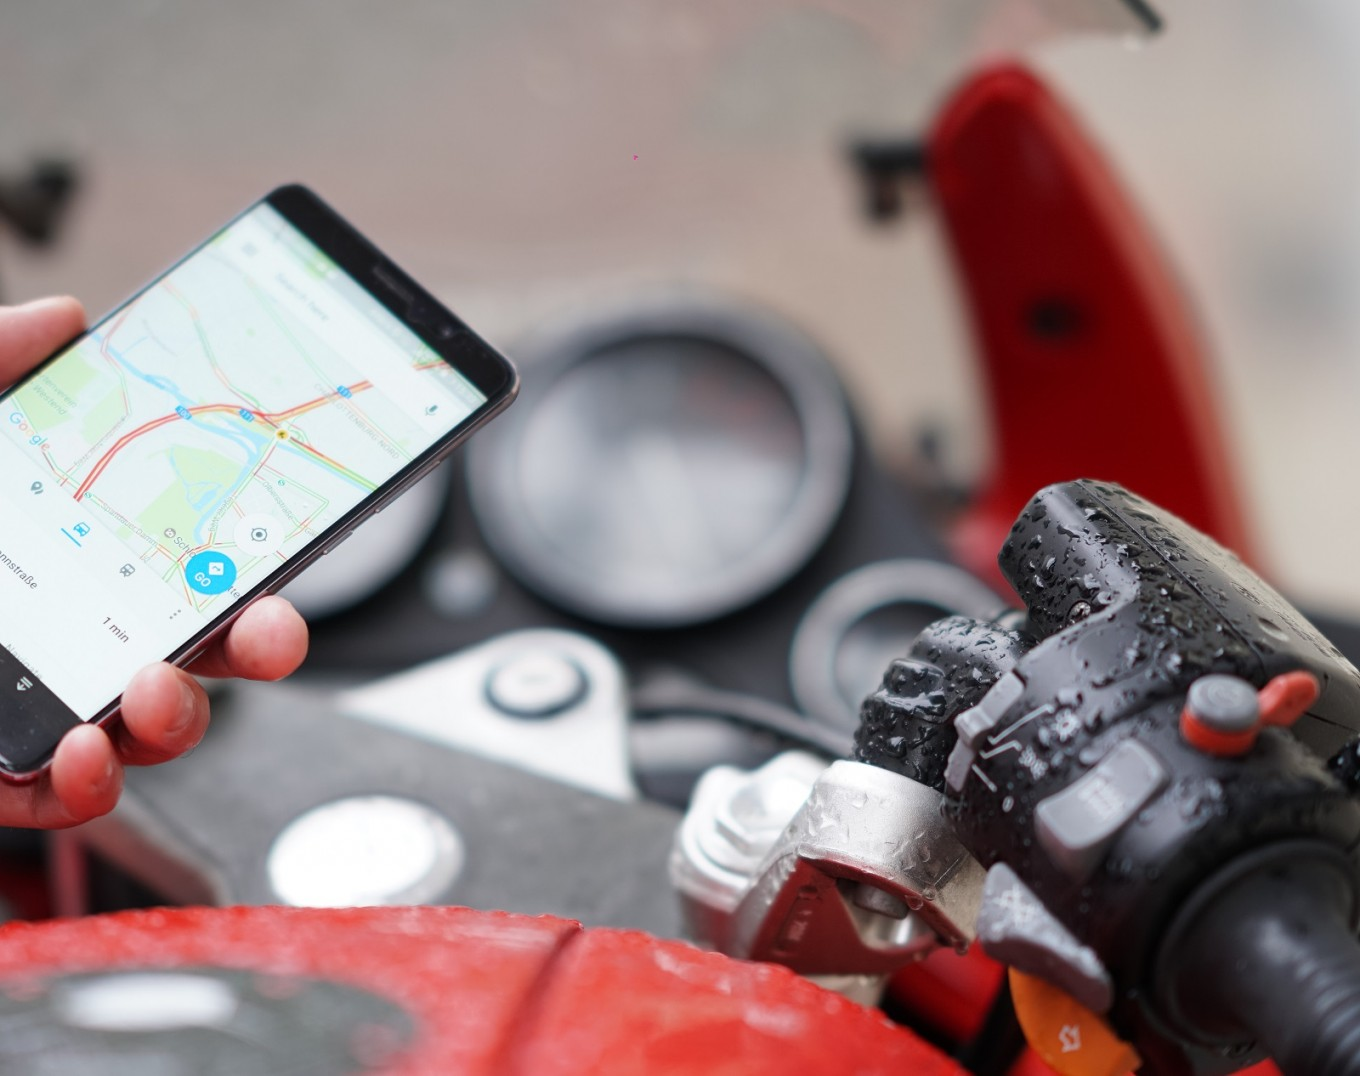 French tourist rides motorbike onto toll road in Google Maps mishap